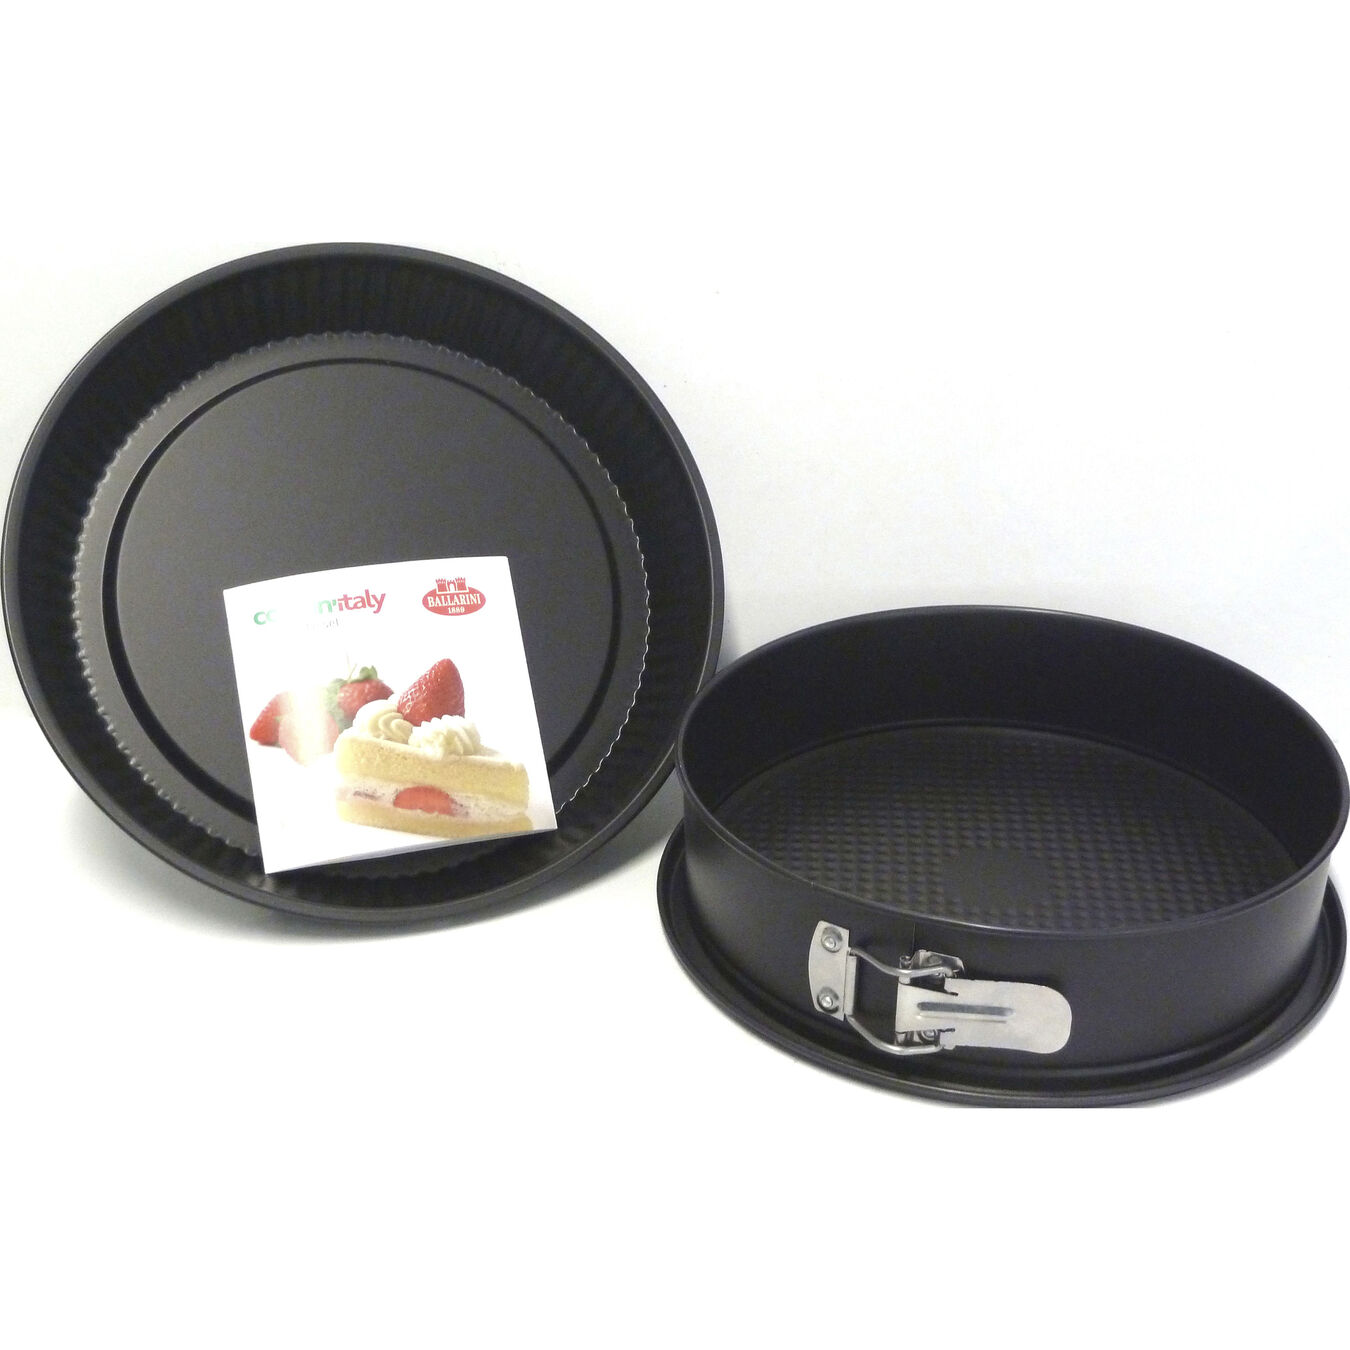 Cake Pan Set,,large 1